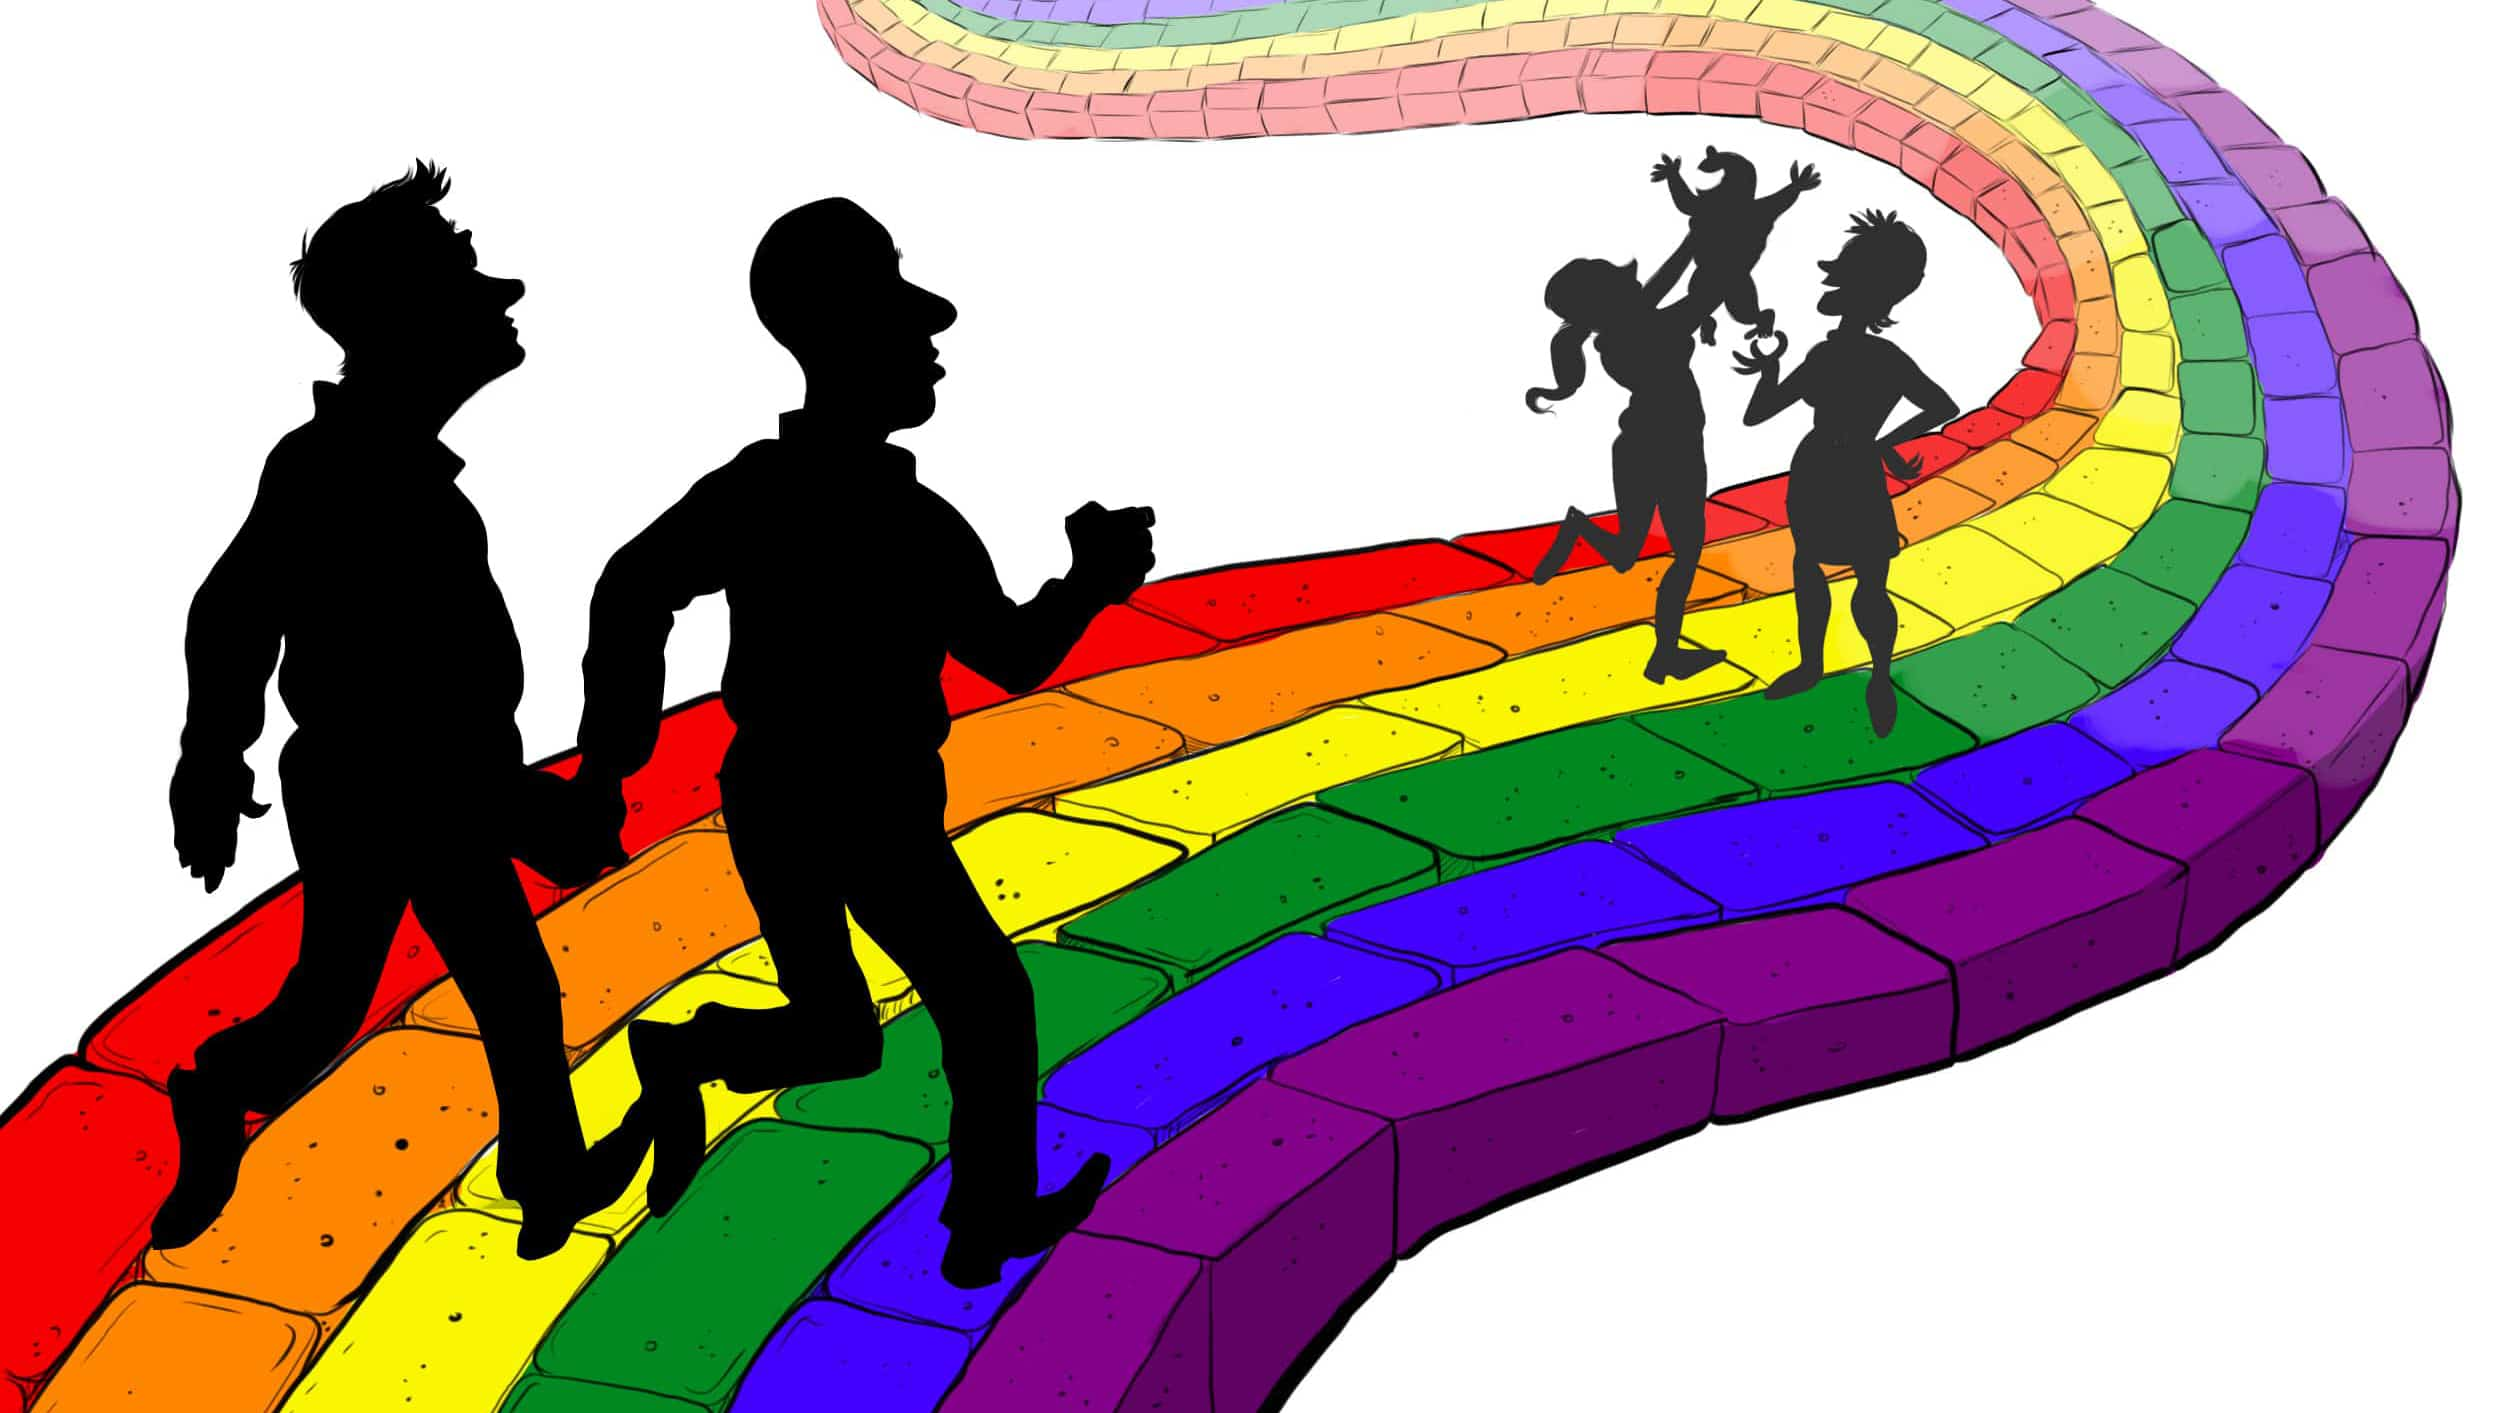 Rainbow brick road with silhouettes